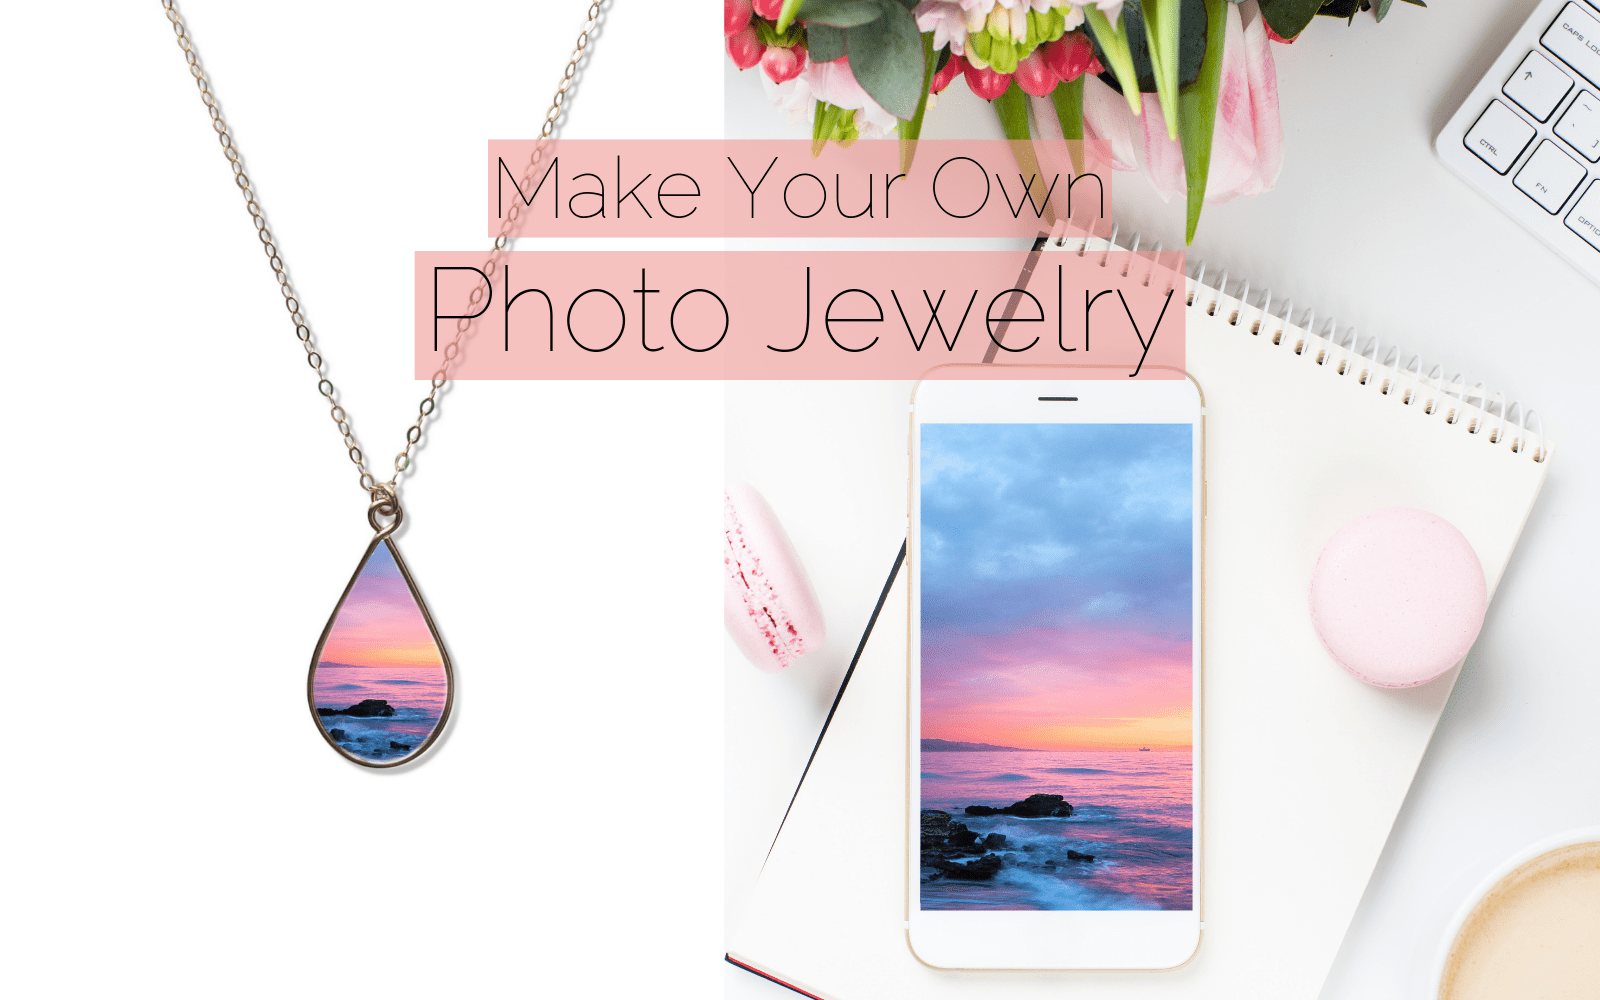 c1364f549ae49 How to Choose The Best Image for Your Custom Photo Jewelry